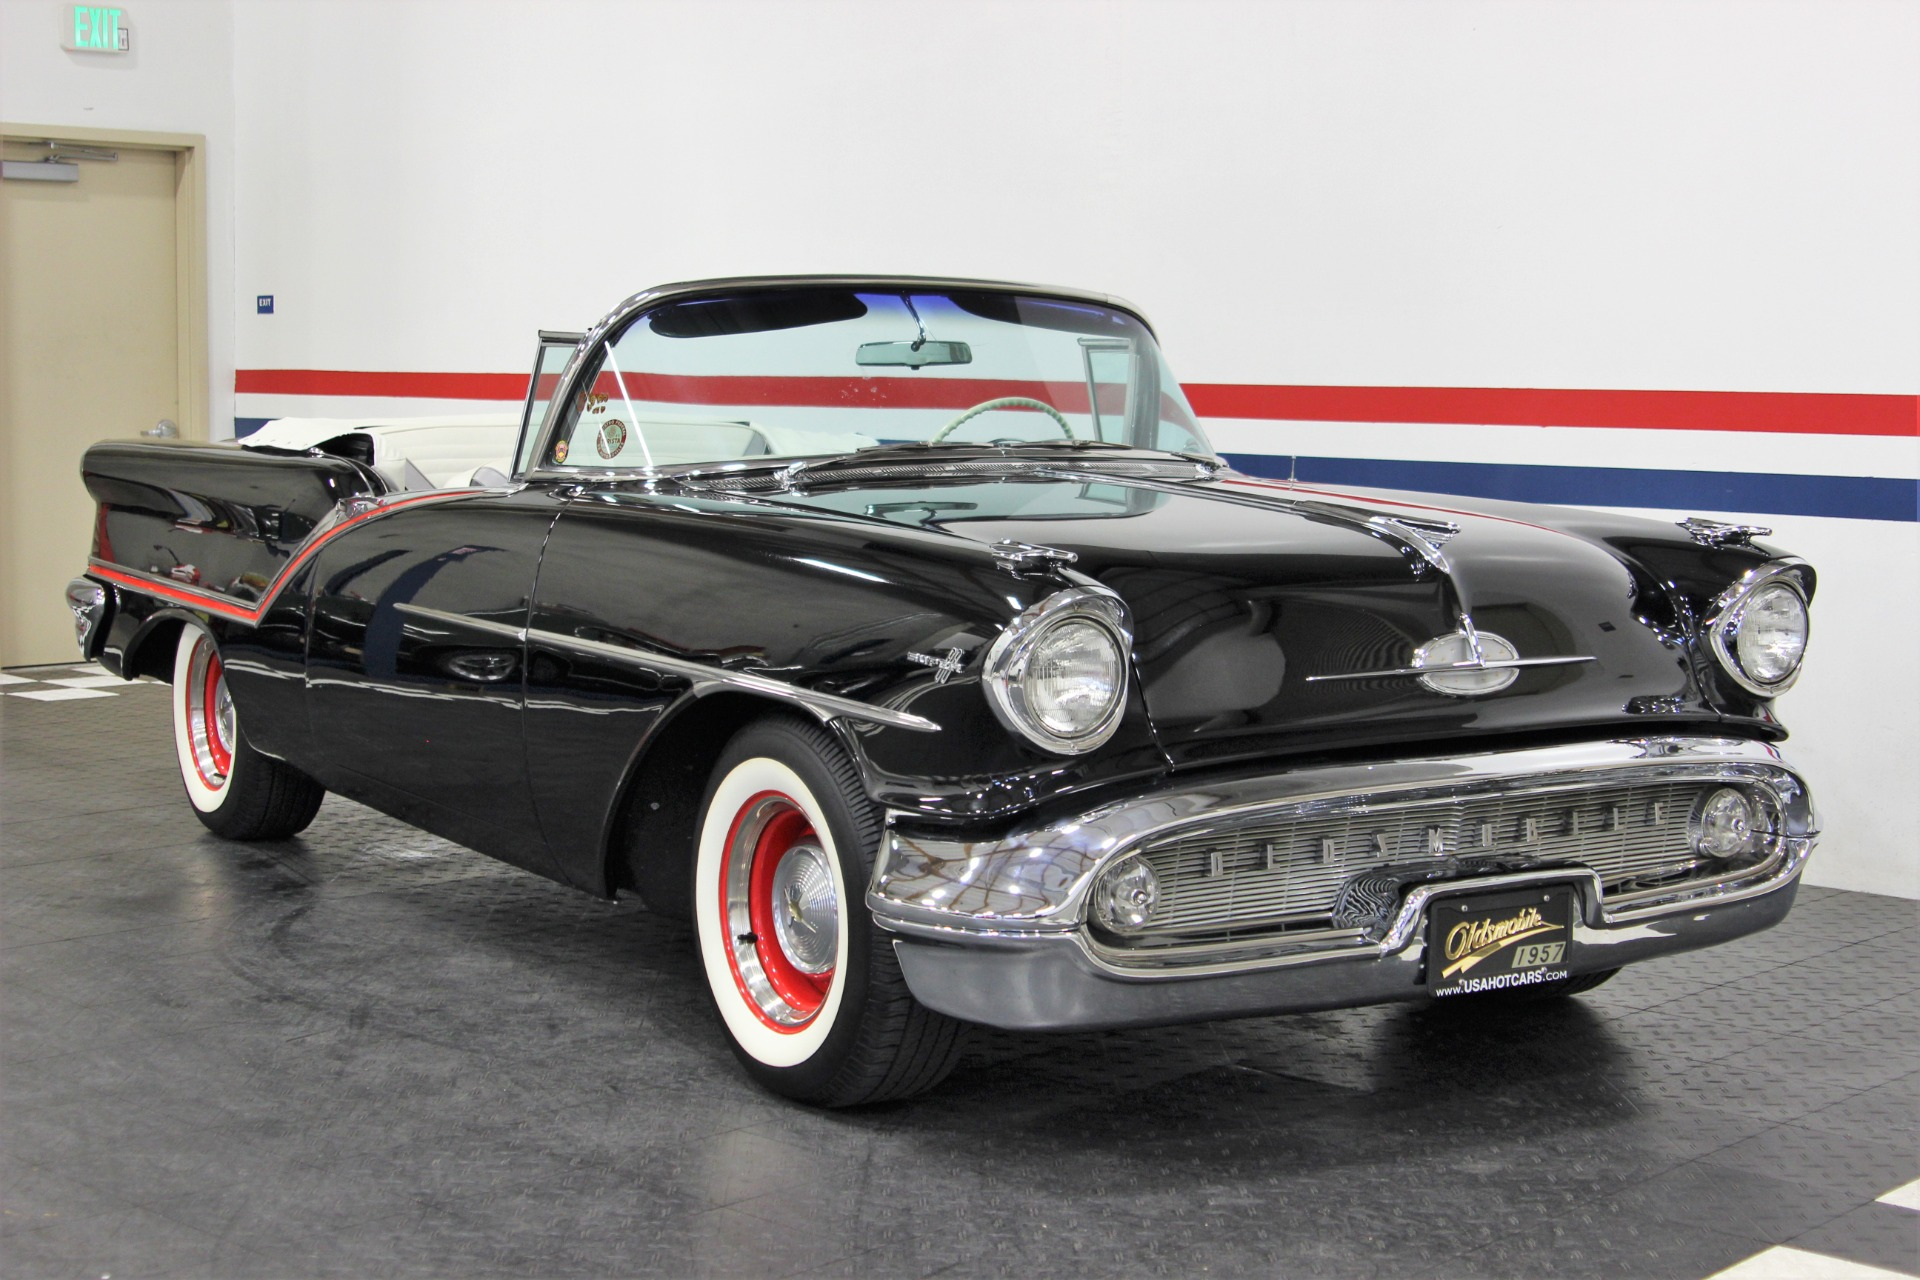 Used-1957-Oldsmobile-Super-88-J-2